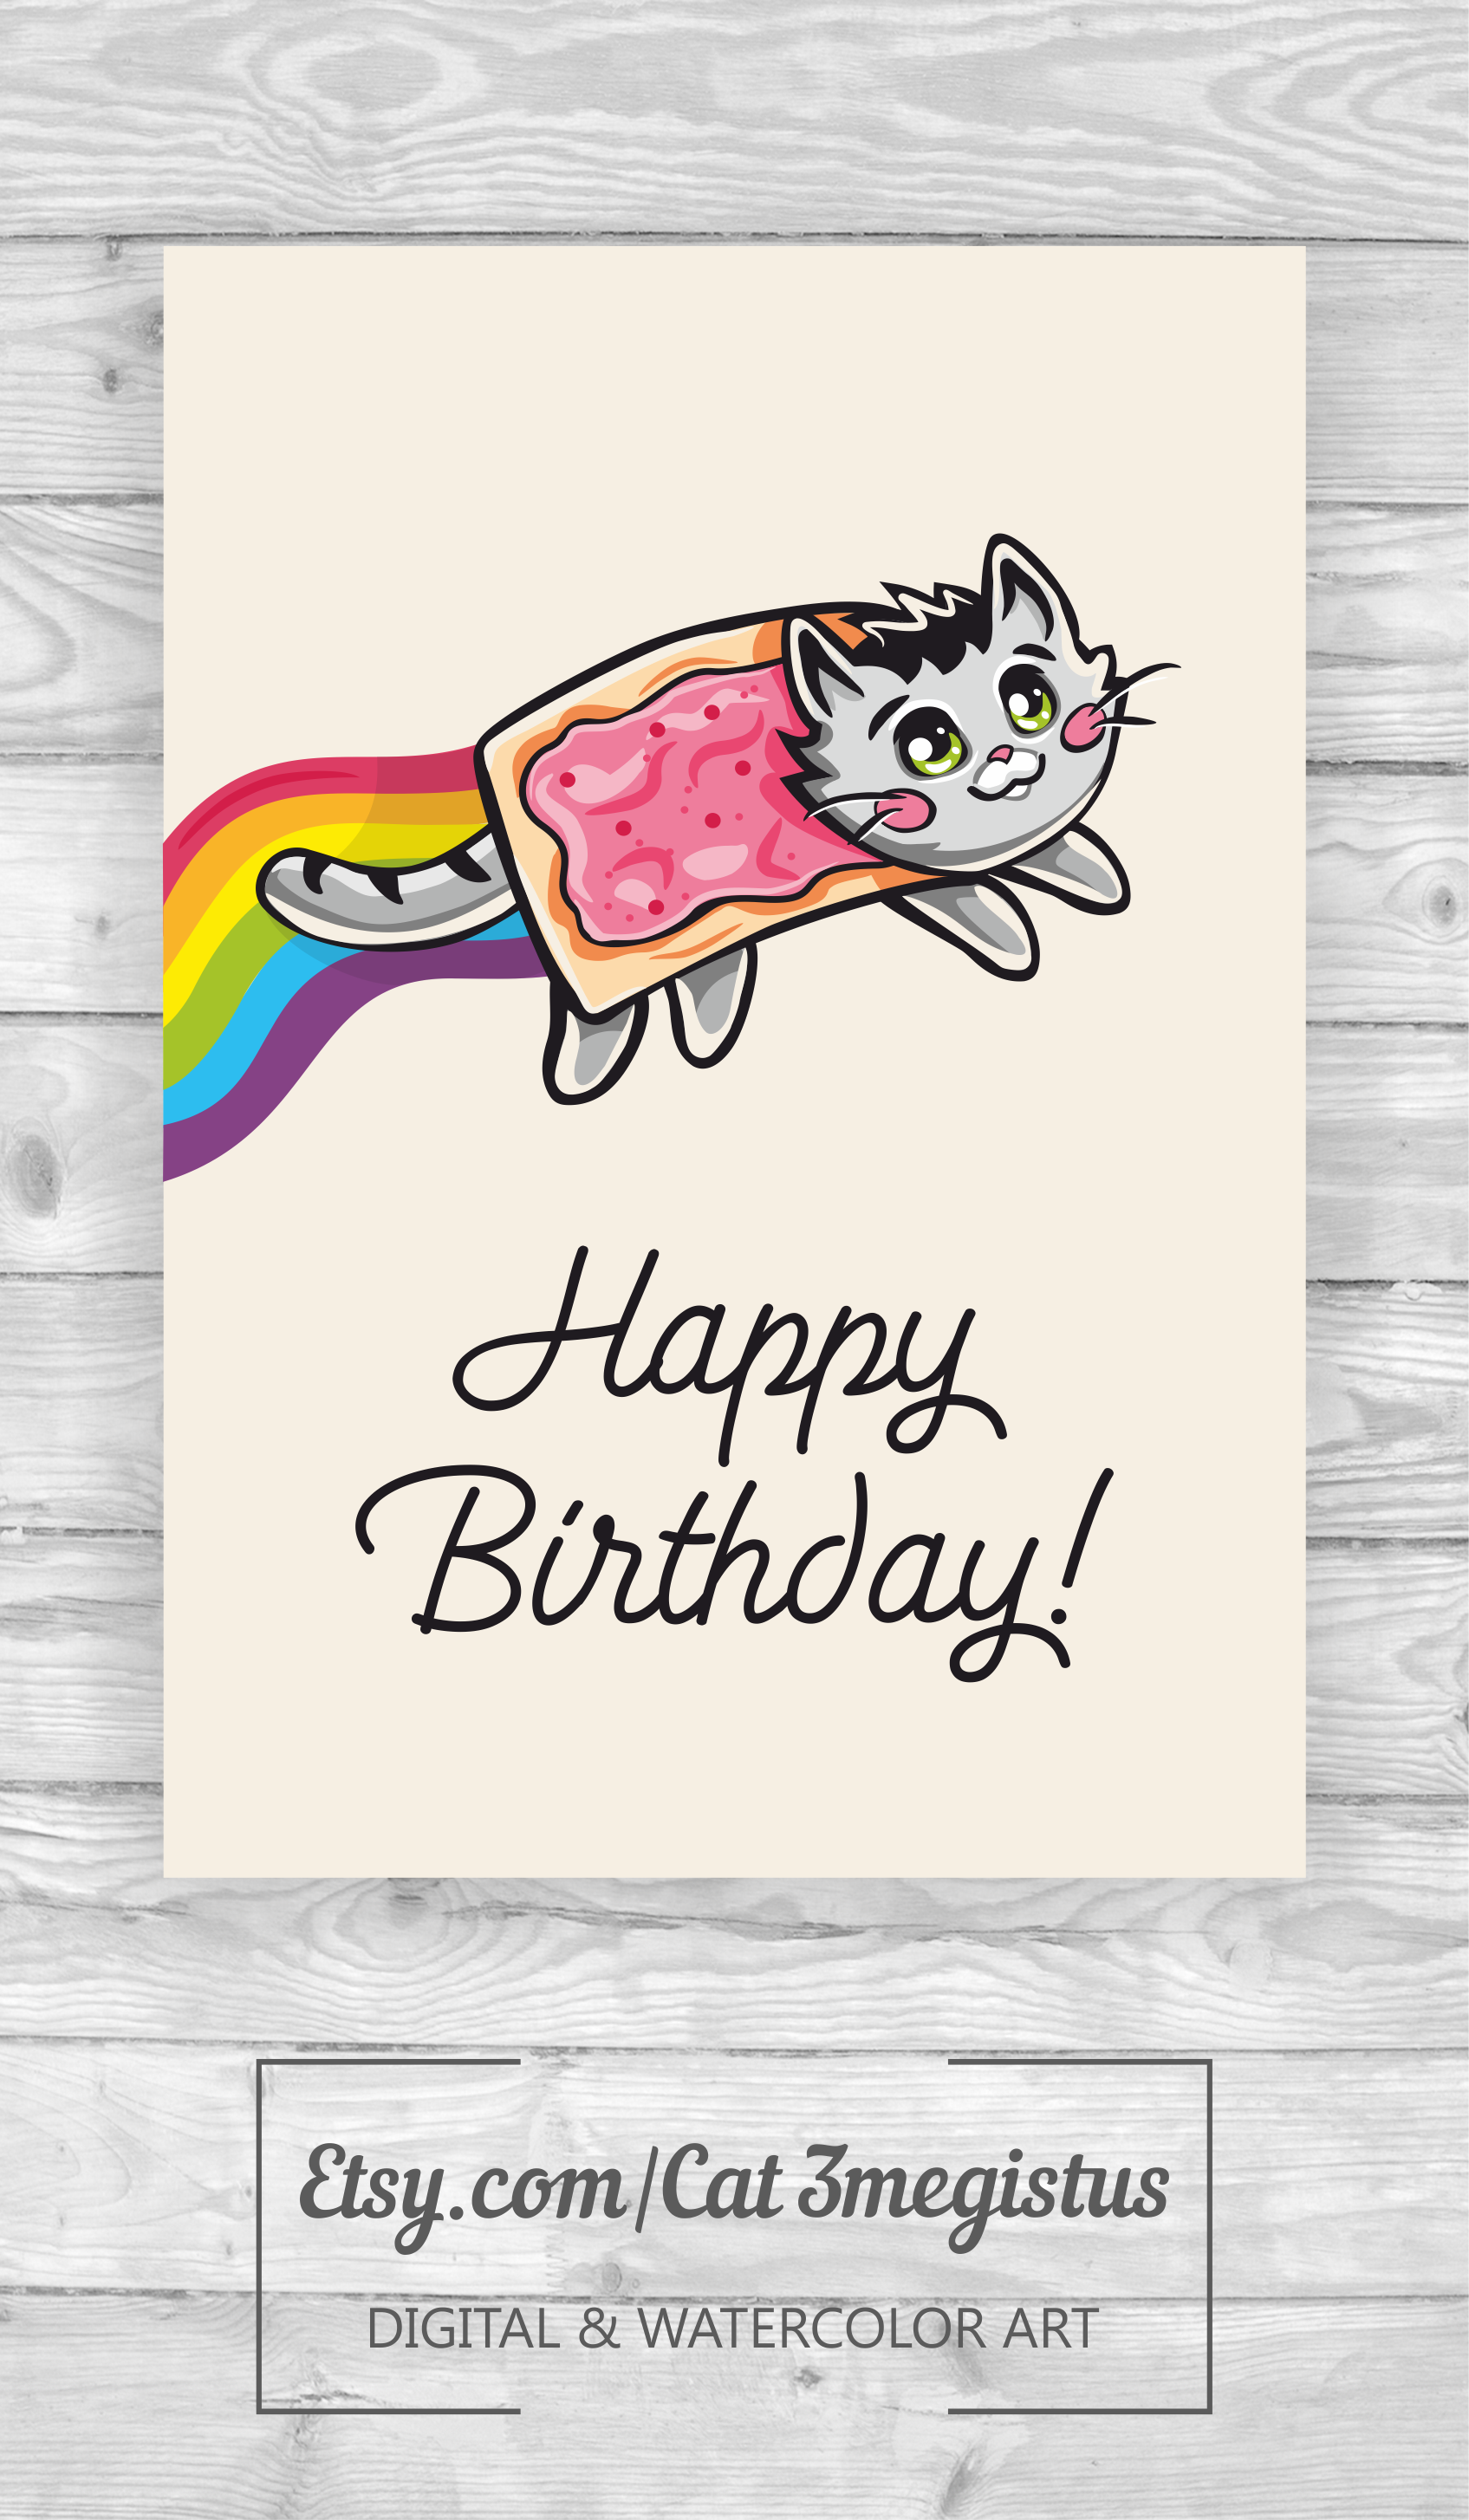 Nyan Cat Meme Fun Greeting Card Nynacat Nursery